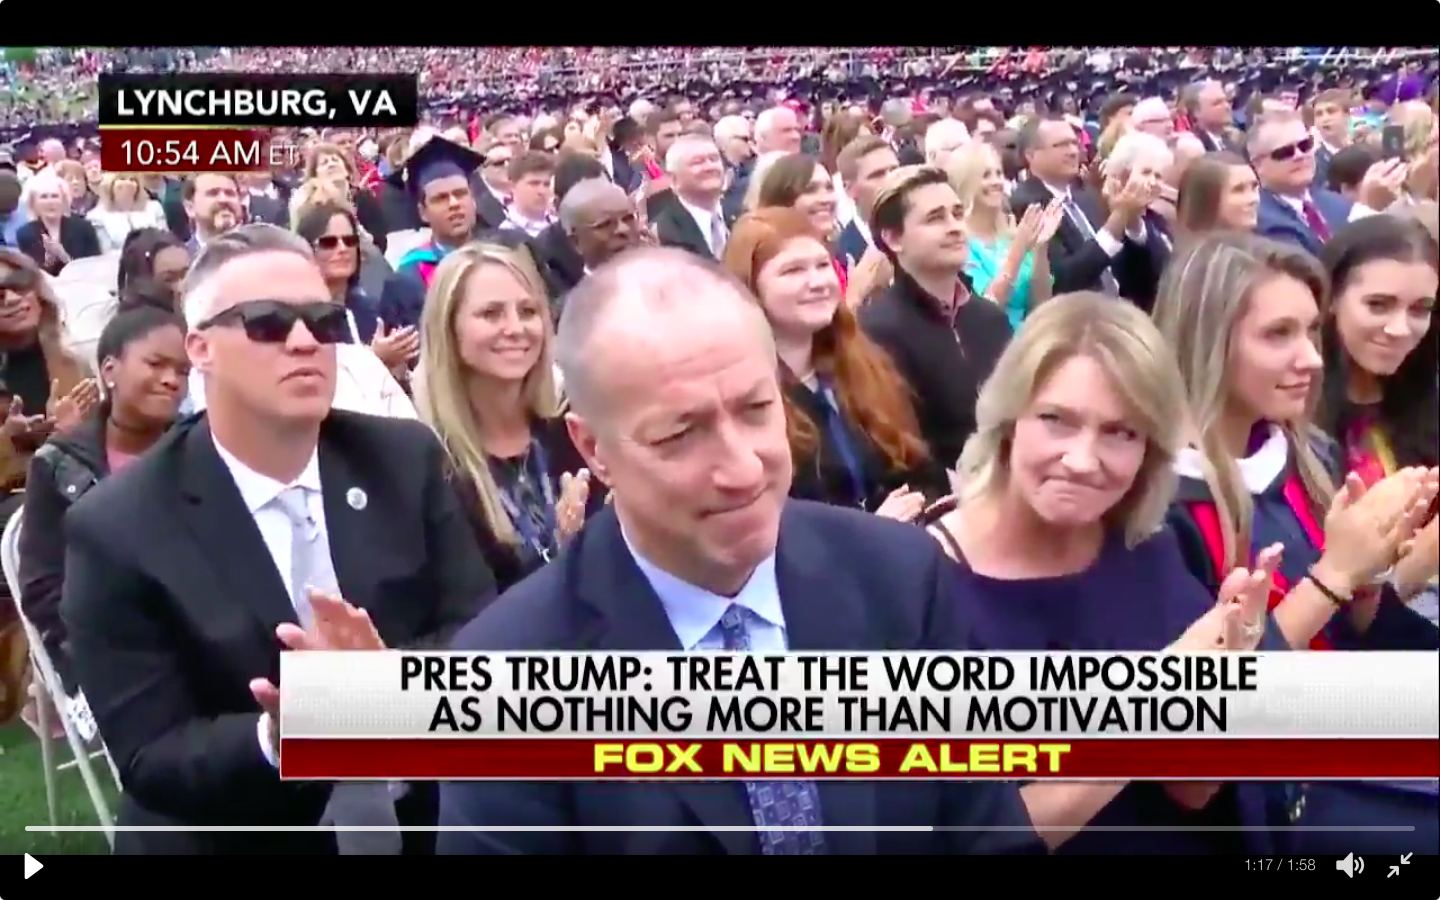 Jim Kelly and his wife, Jill, were recognized Saturday during President Trump's commencement speech at Liberty University.